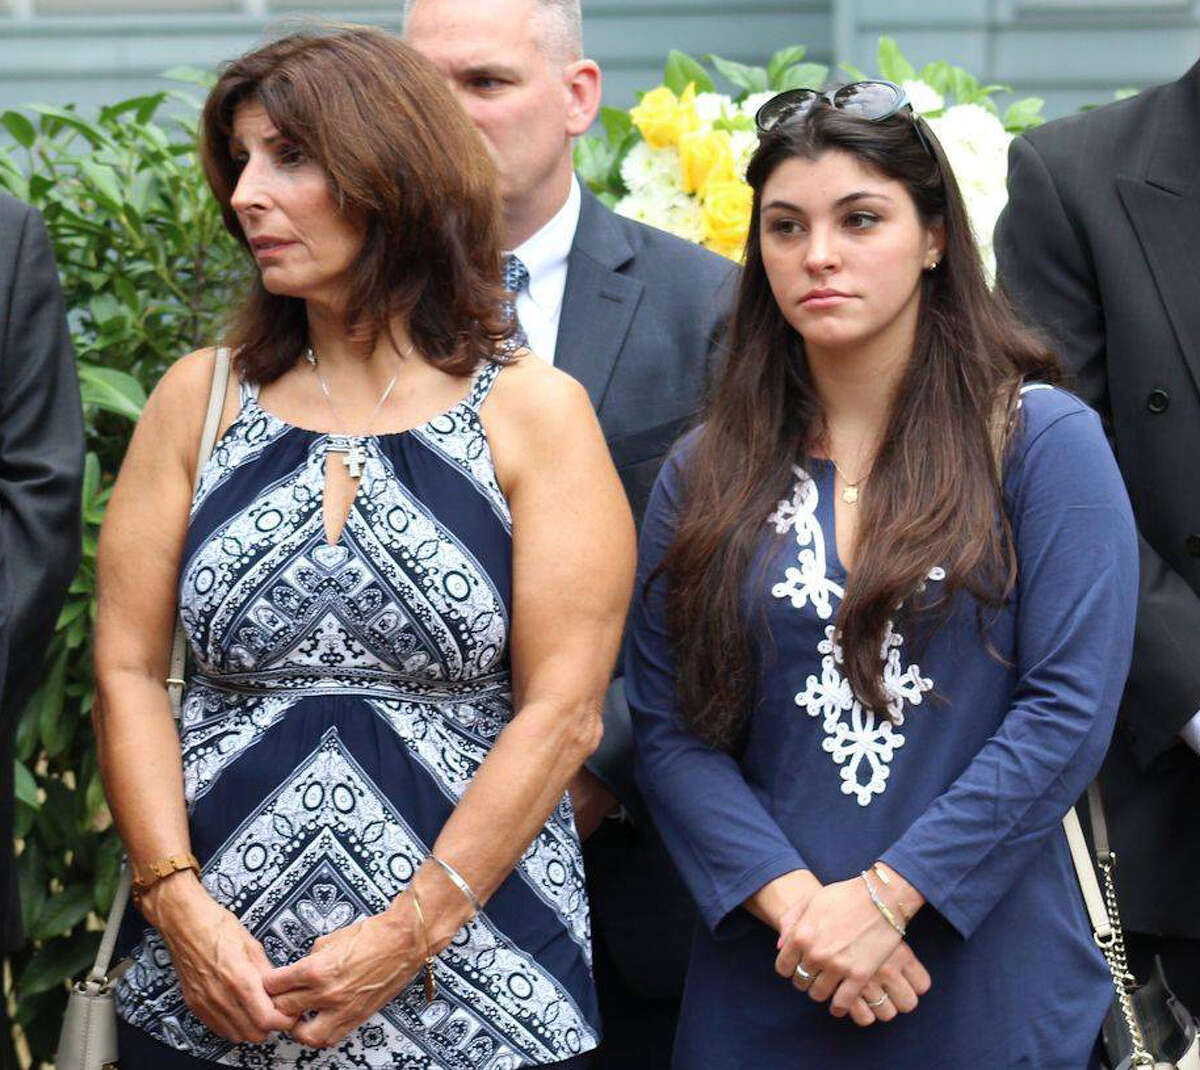 Roseanne Nelson and her daughter Caitlin Nelson at a 2016 9/11 ceremony held to honor her father, James A. Nelson, who was killed in the 2001 terrorist attack when Kaitlin was 5-years-old. Caitlin Nelson, 21, of Clark, NJ, died Sunday, April 2, 2017 from complications following a campus event on Thursday.